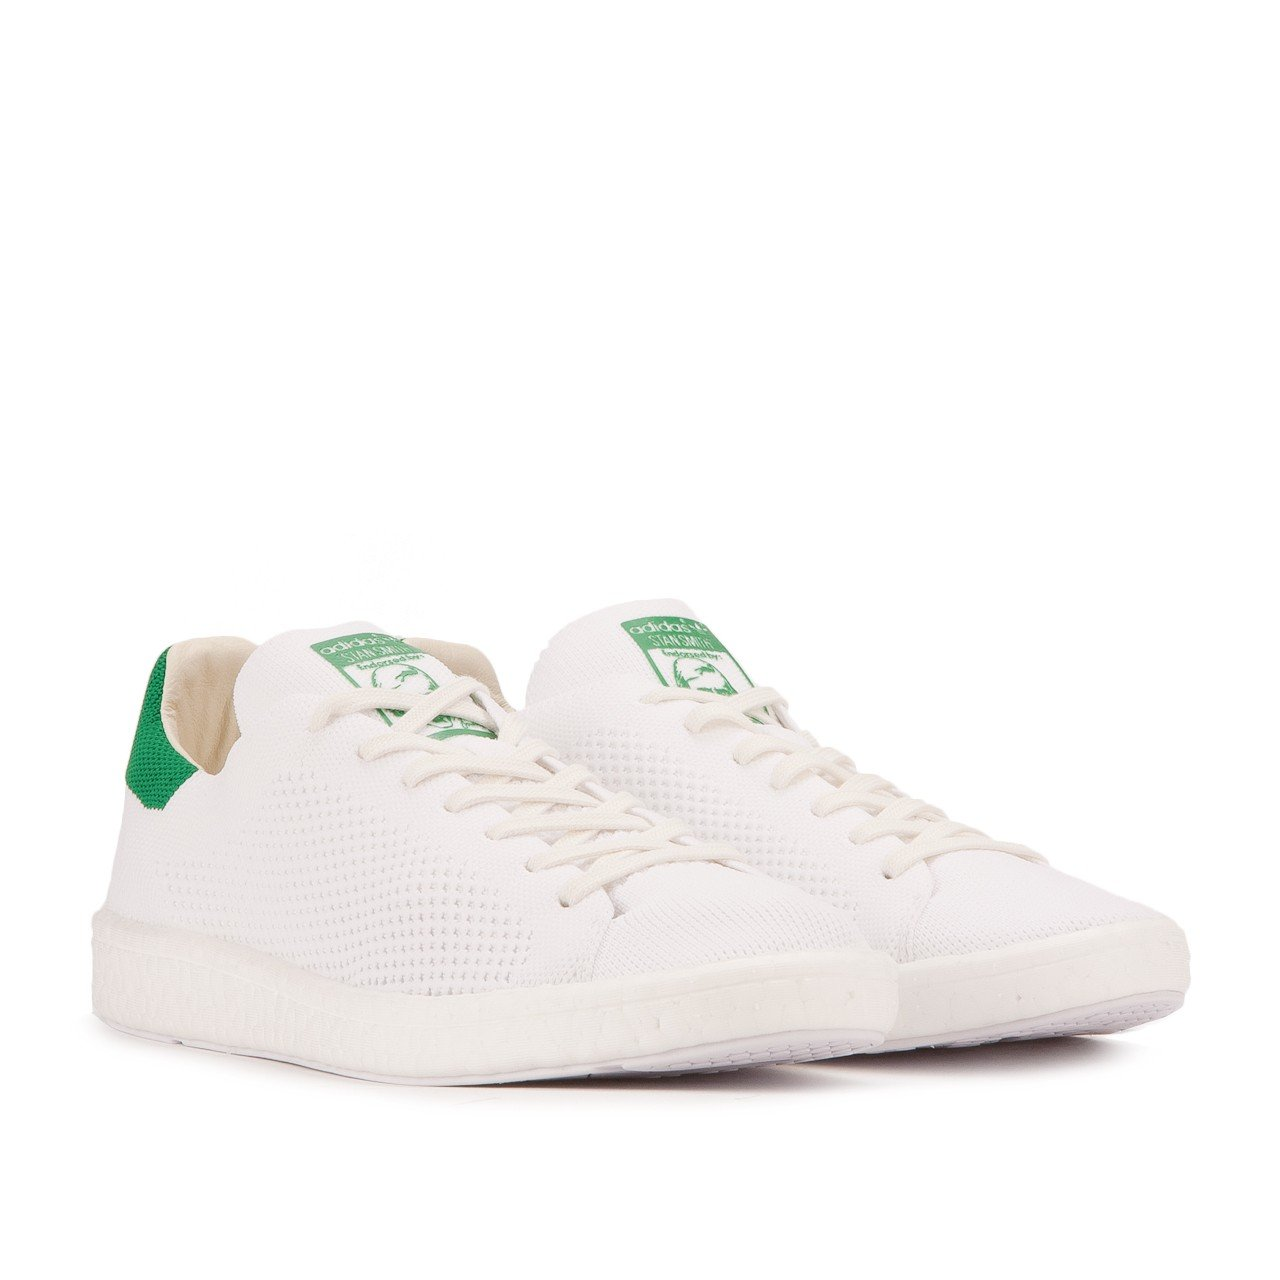 newest 58a2f 8ff08 Adidas Stan Smith Primeknit Mens (w/Boost Sole) in White ...